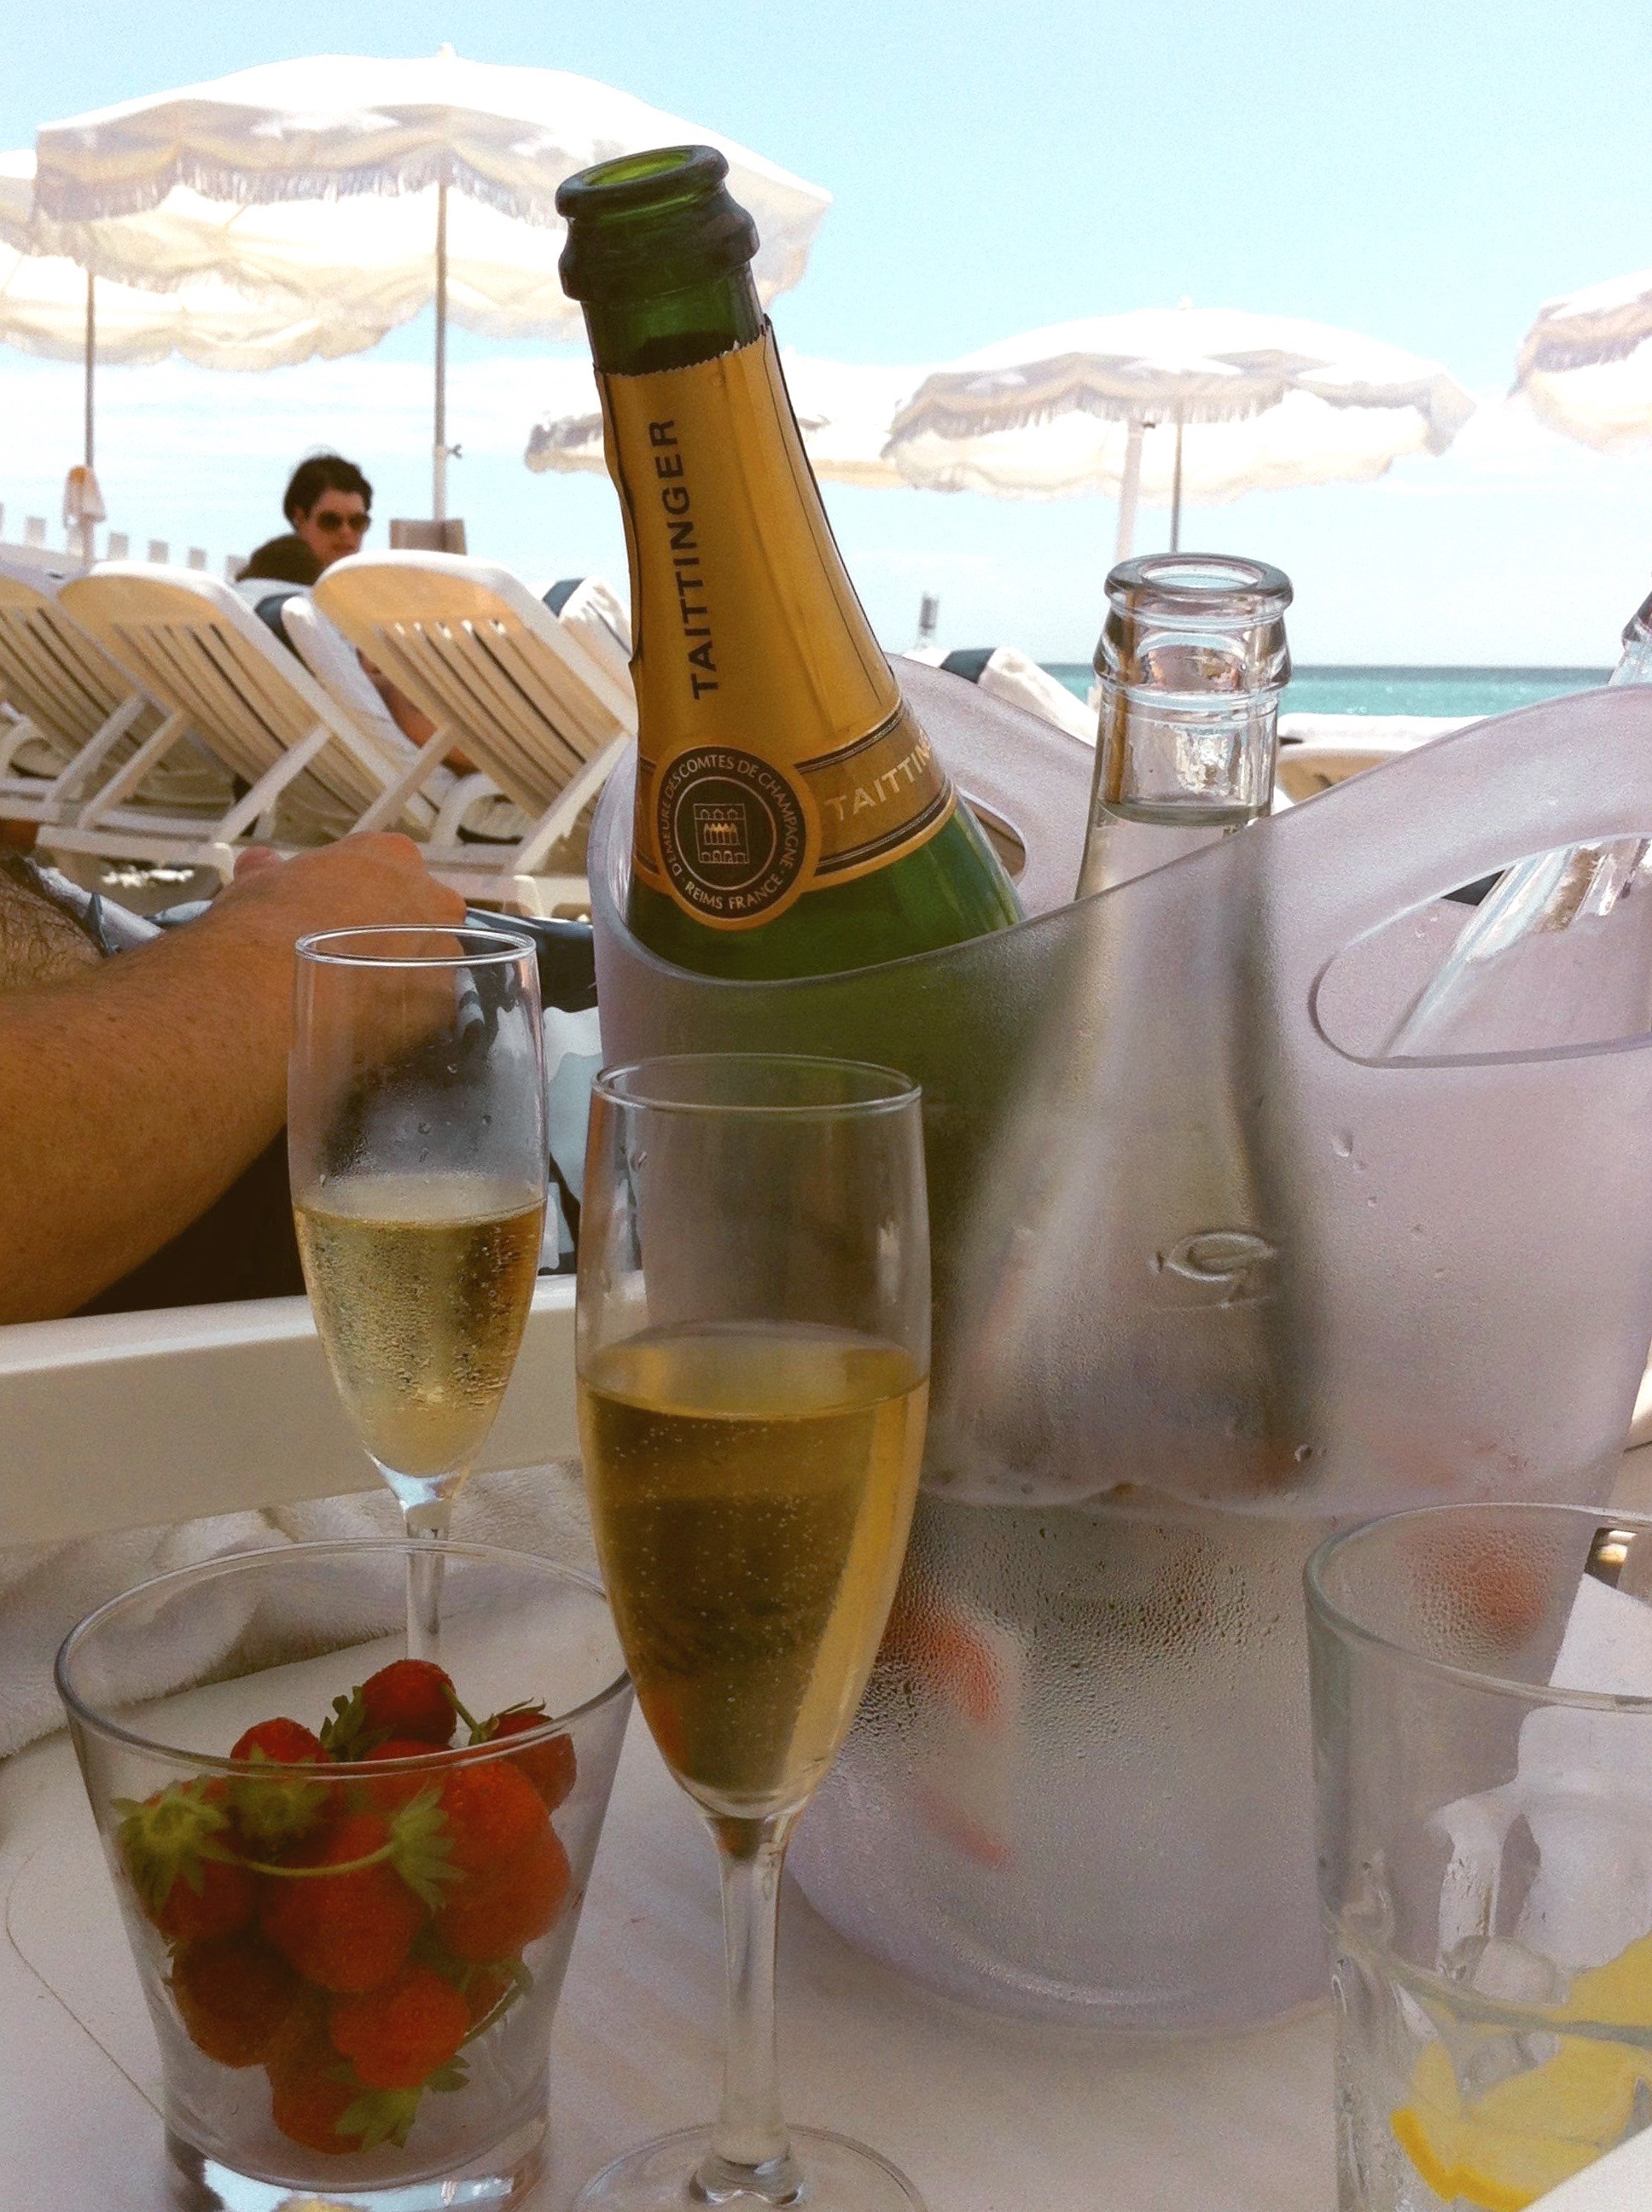 The strawberries, champagne and sea (author's own photo)